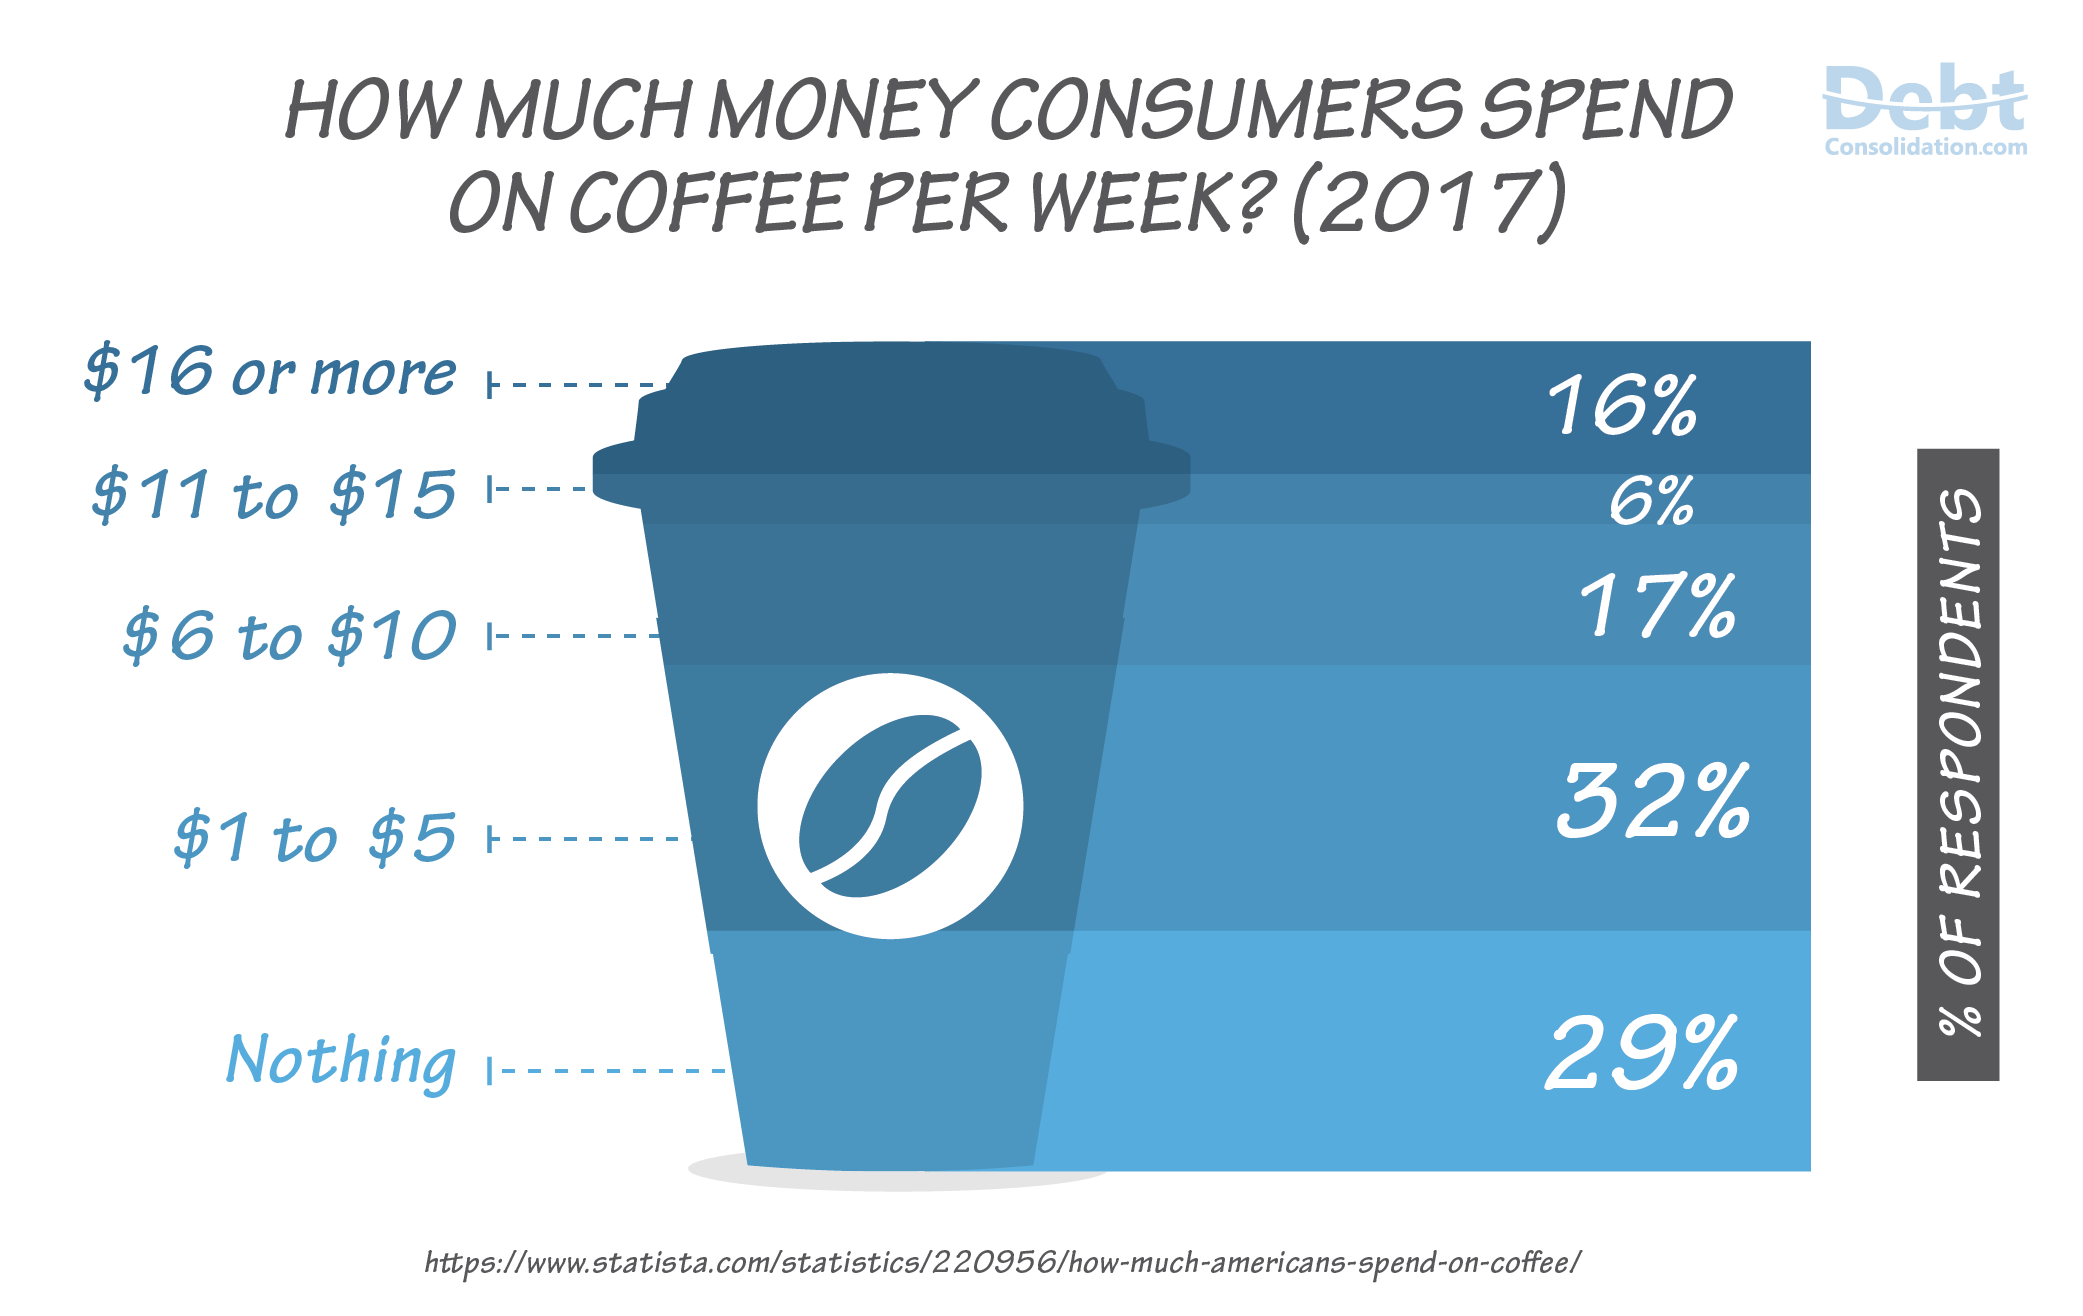 Amount of Money Consumers Spend on Coffee in 2017